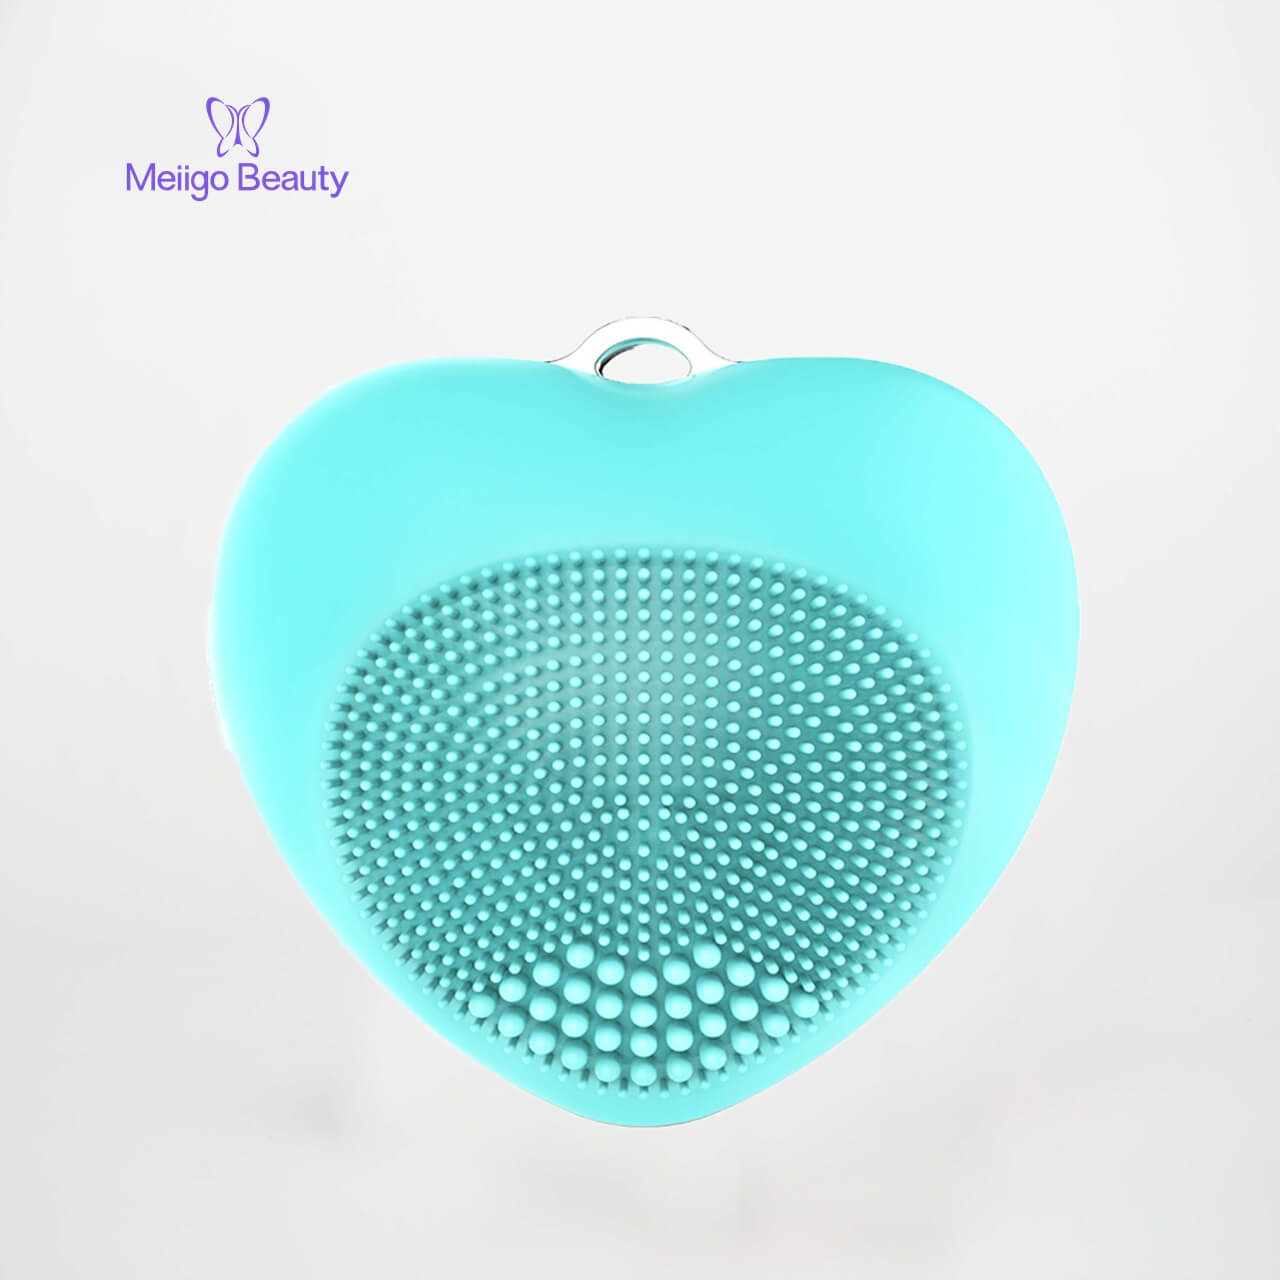 Meiigo beauty heart shape facial brush BR 002 4 - Facial cleansing brush mini silicone sonic face massager  BR-002